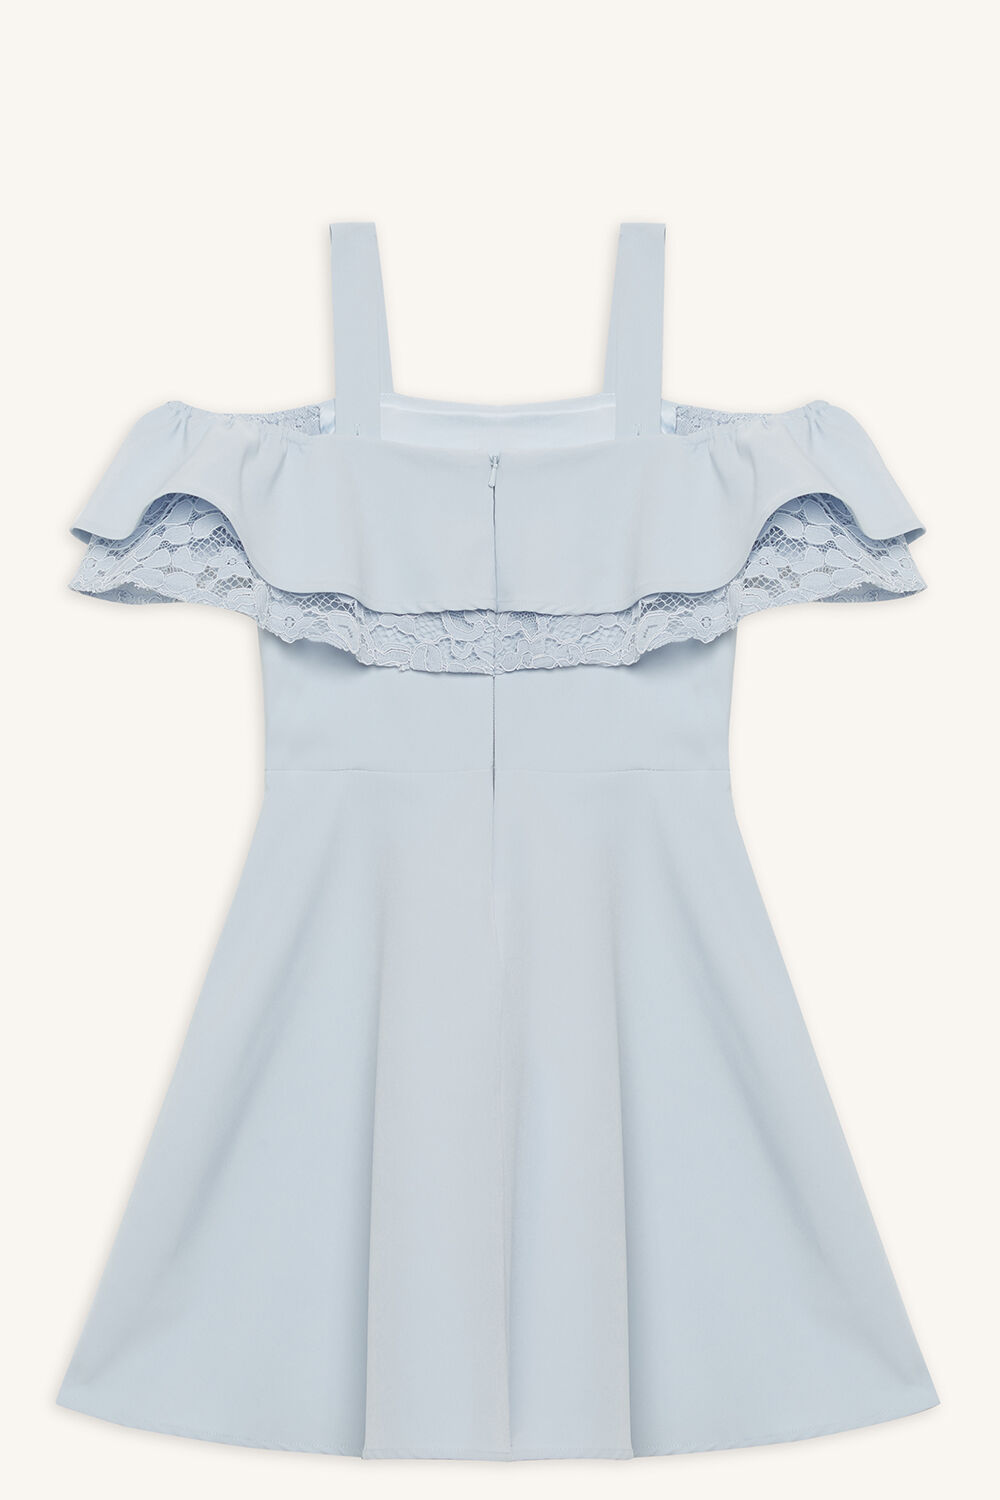 JUNE FRILL DRESS in colour BALLAD BLUE